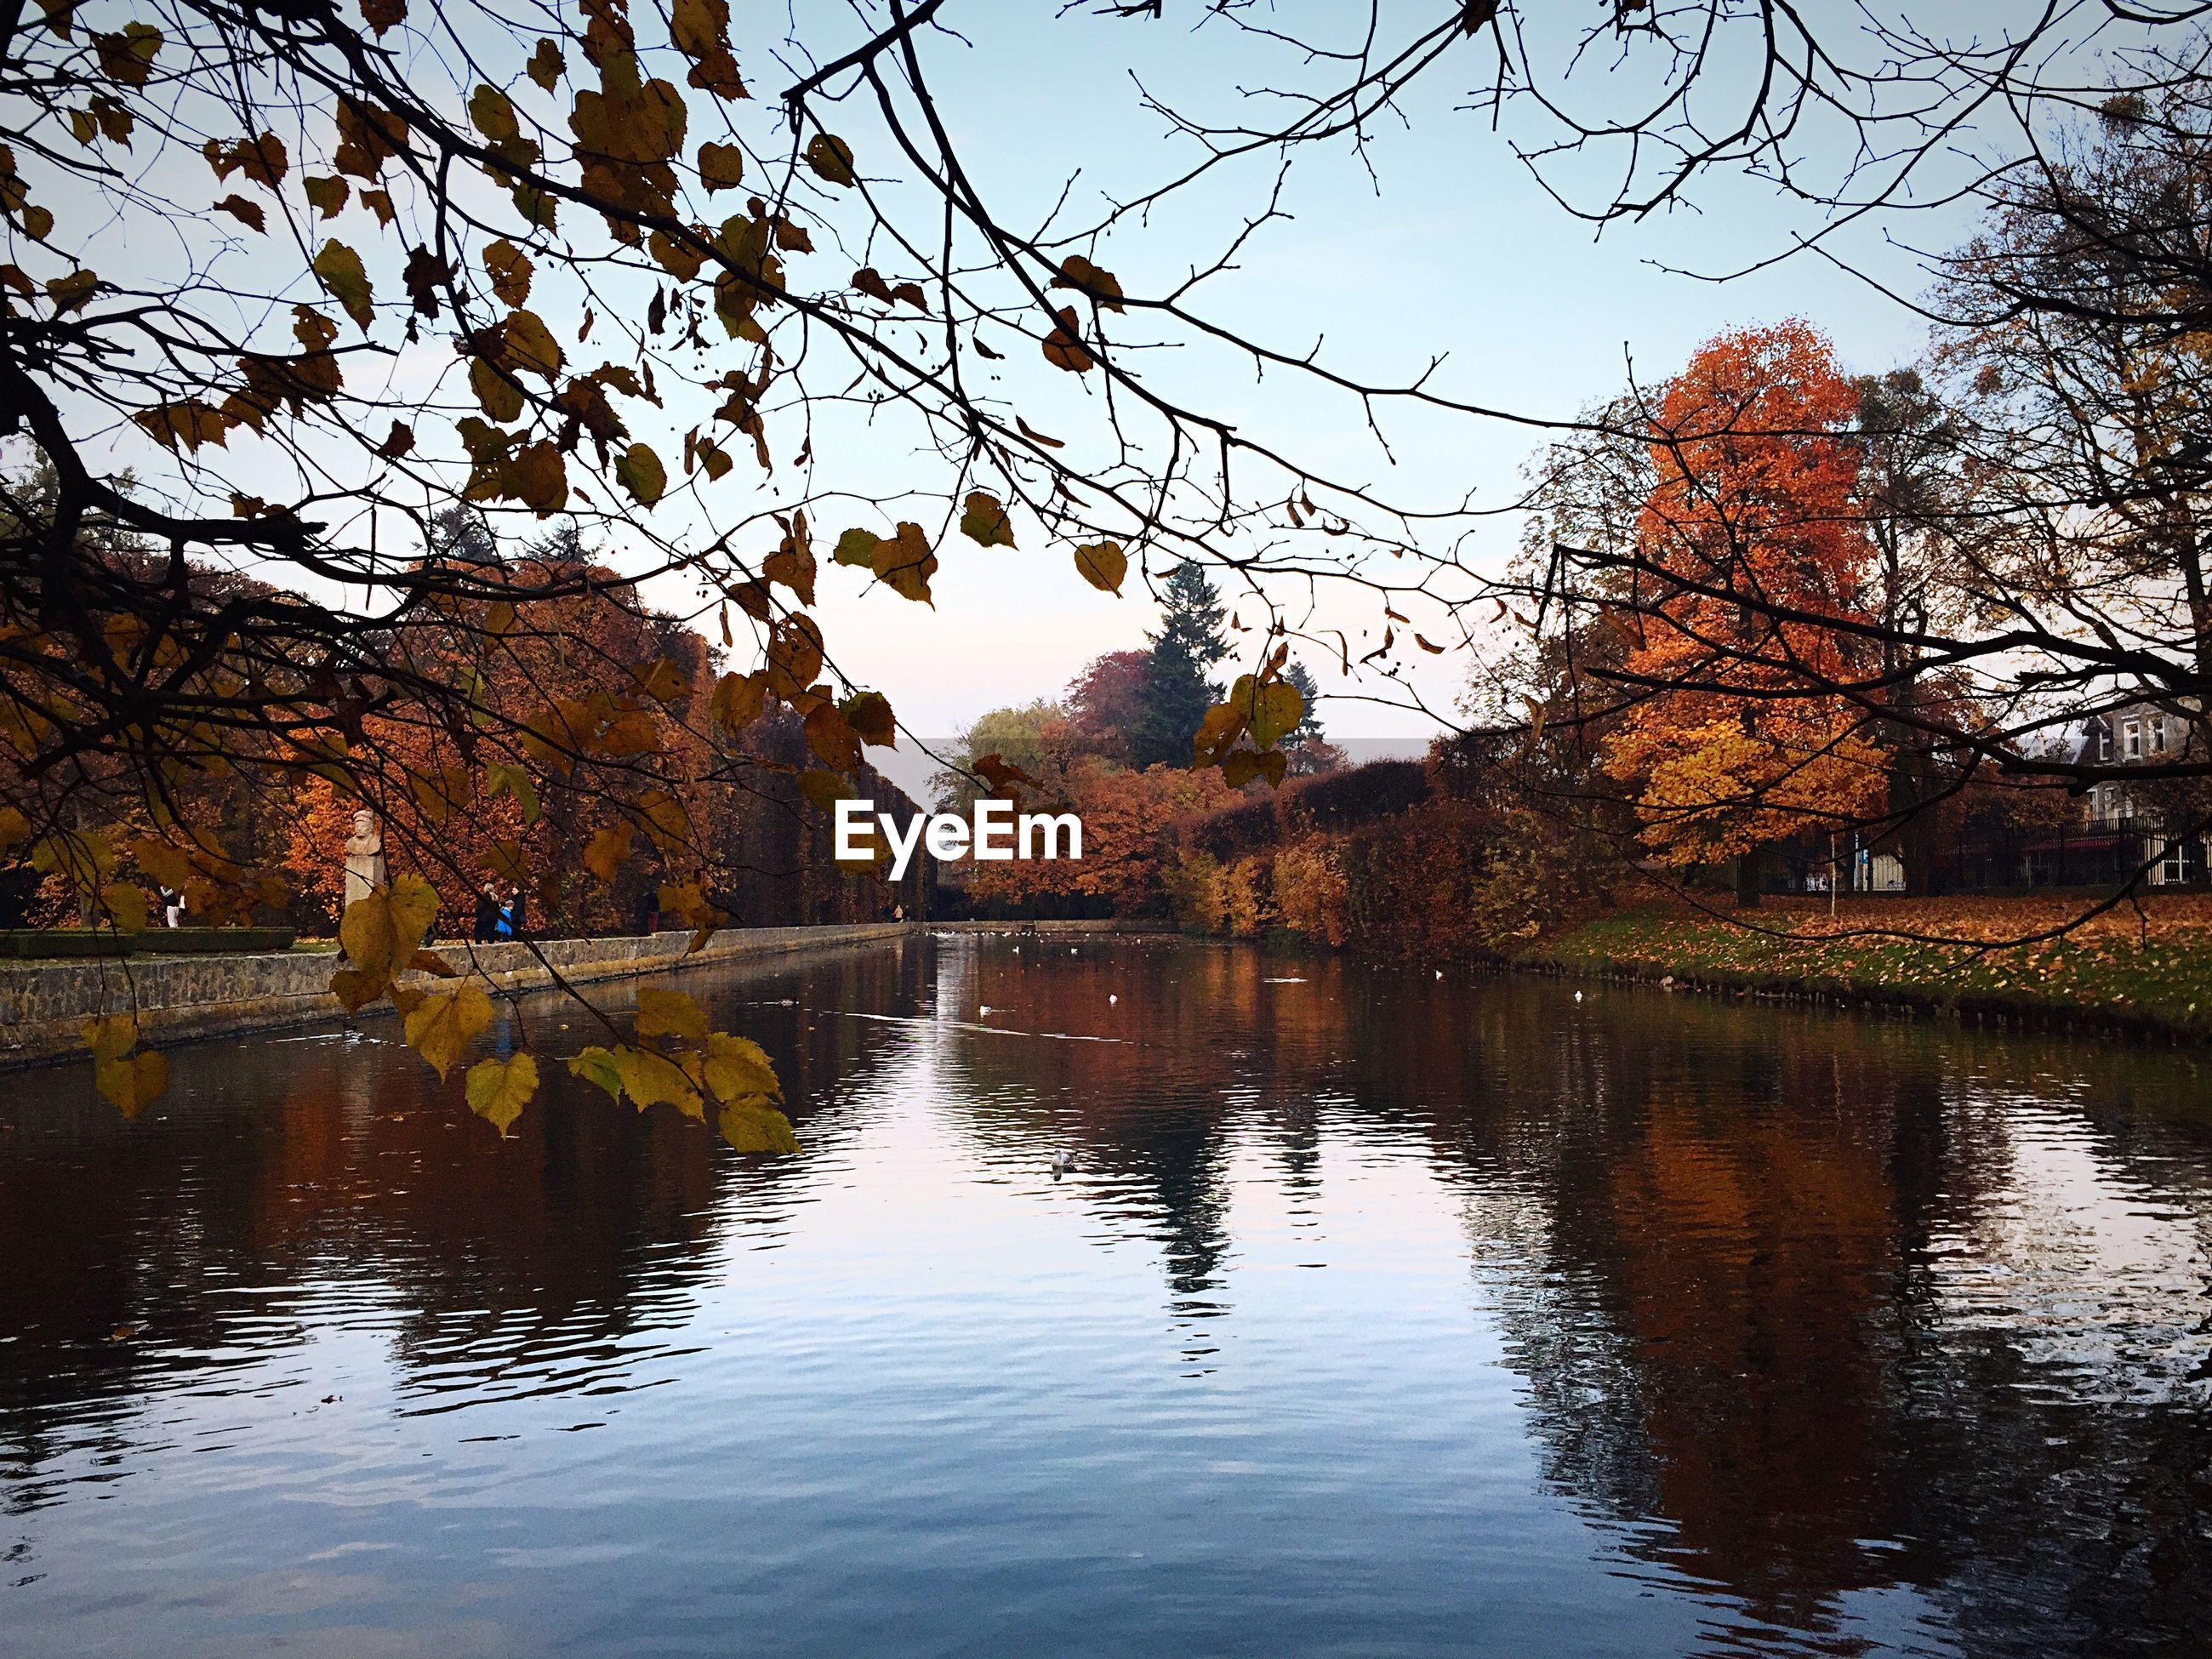 Scenic view of canal amidst trees at park